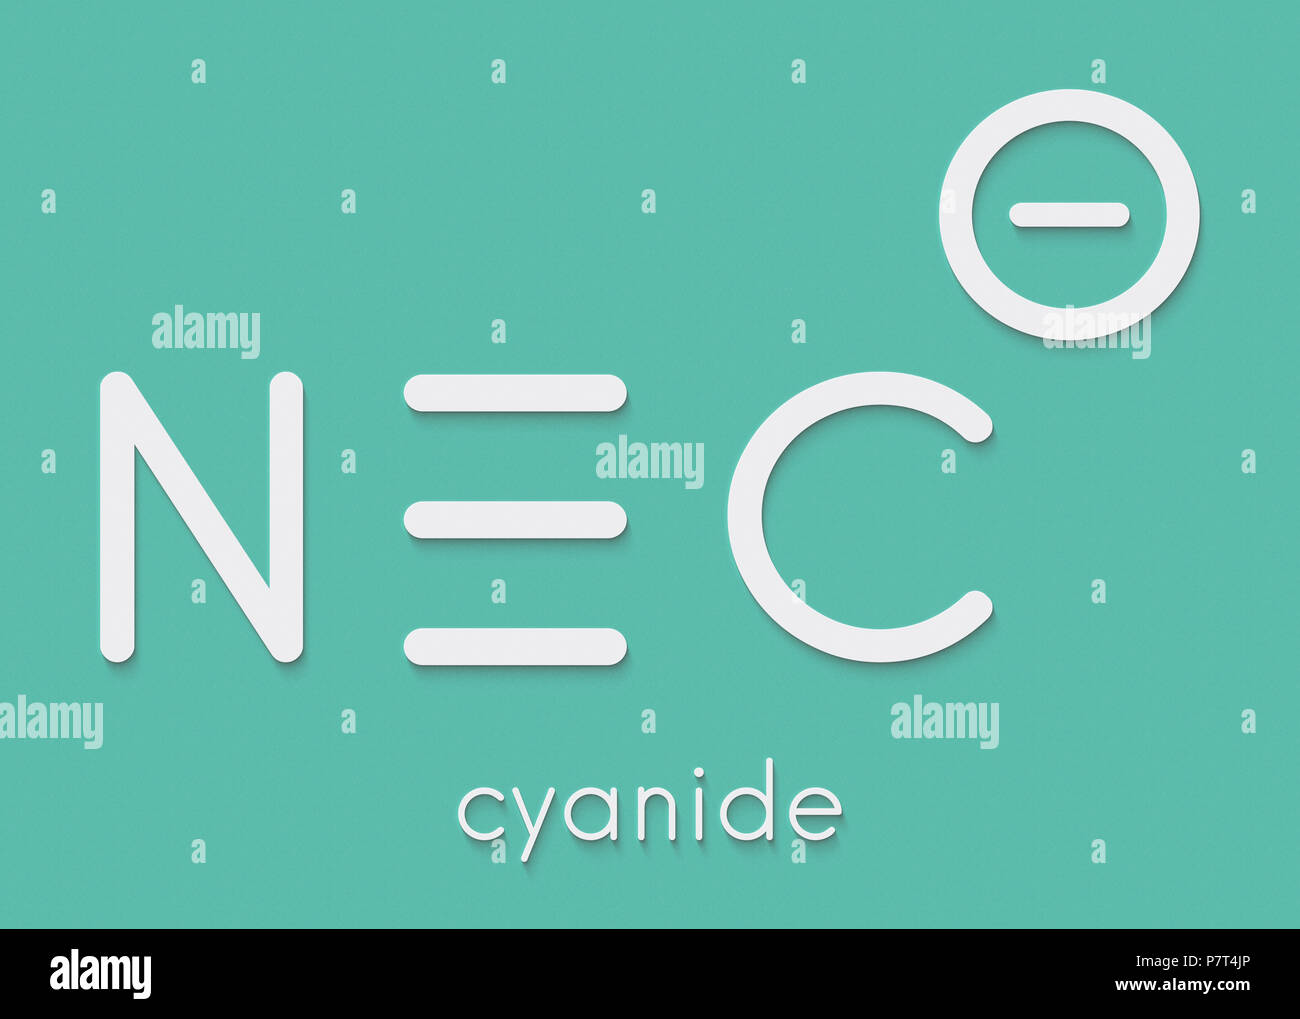 Cyanide Anion Chemical Structure Cyanides Are Toxic Due To